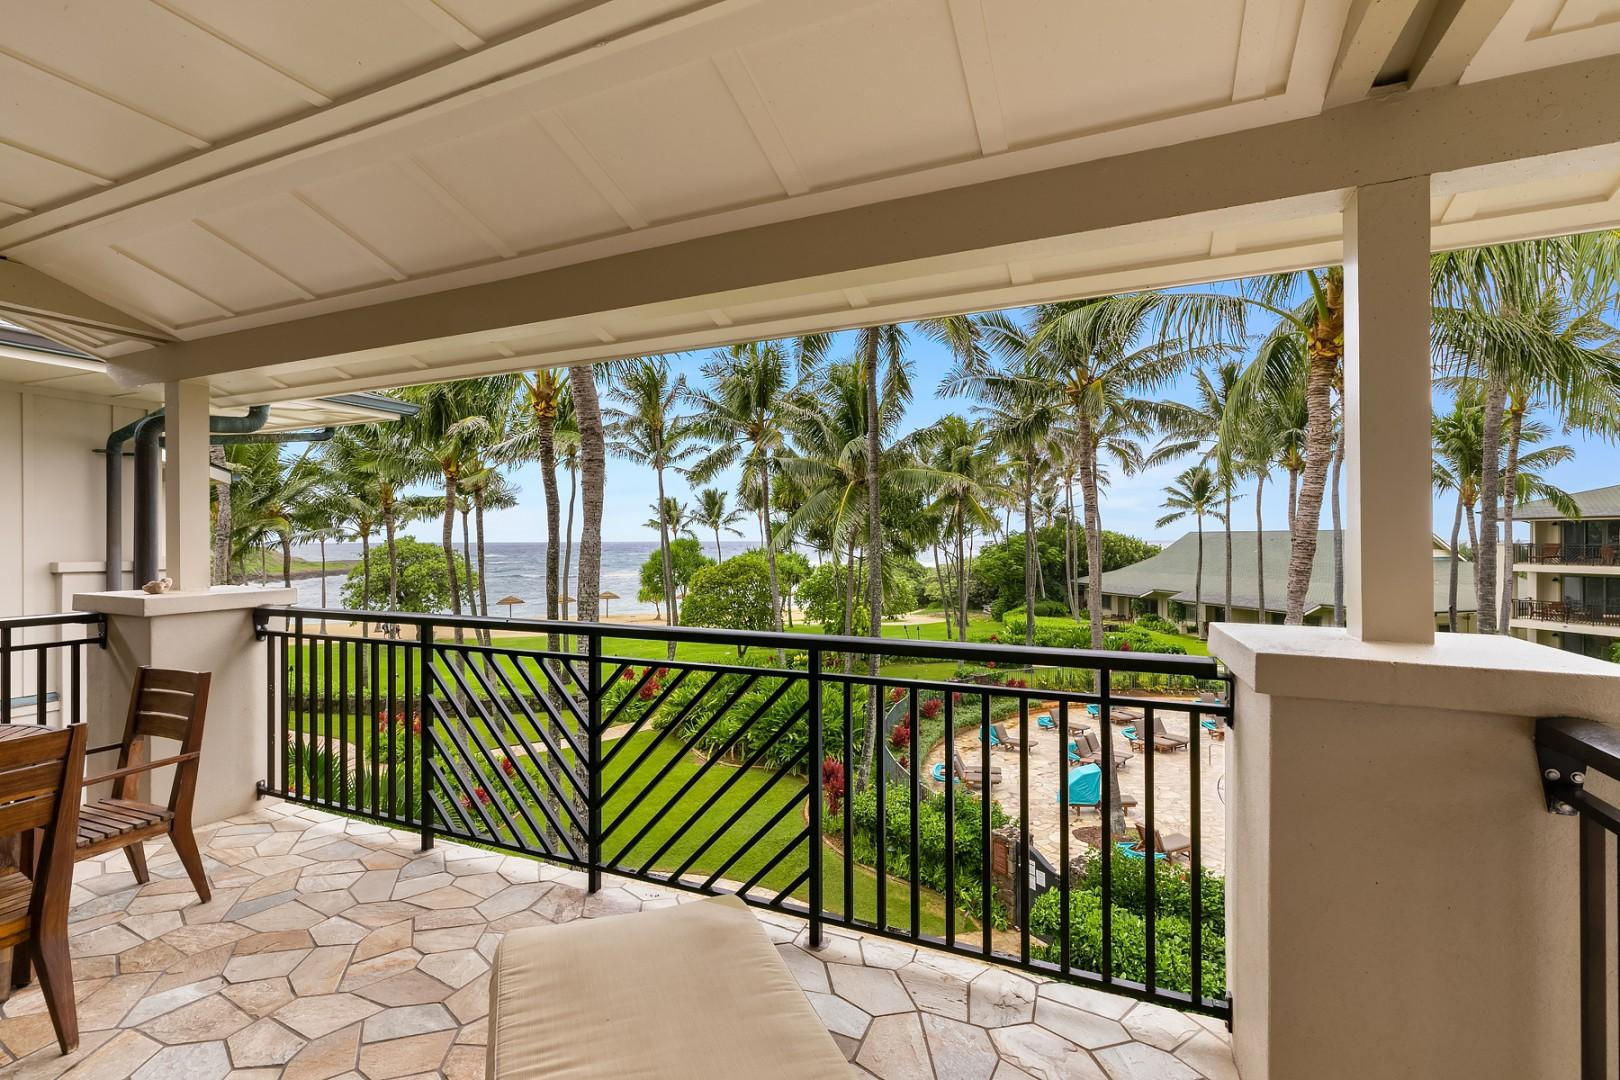 Ocean and Pool views from the lanai